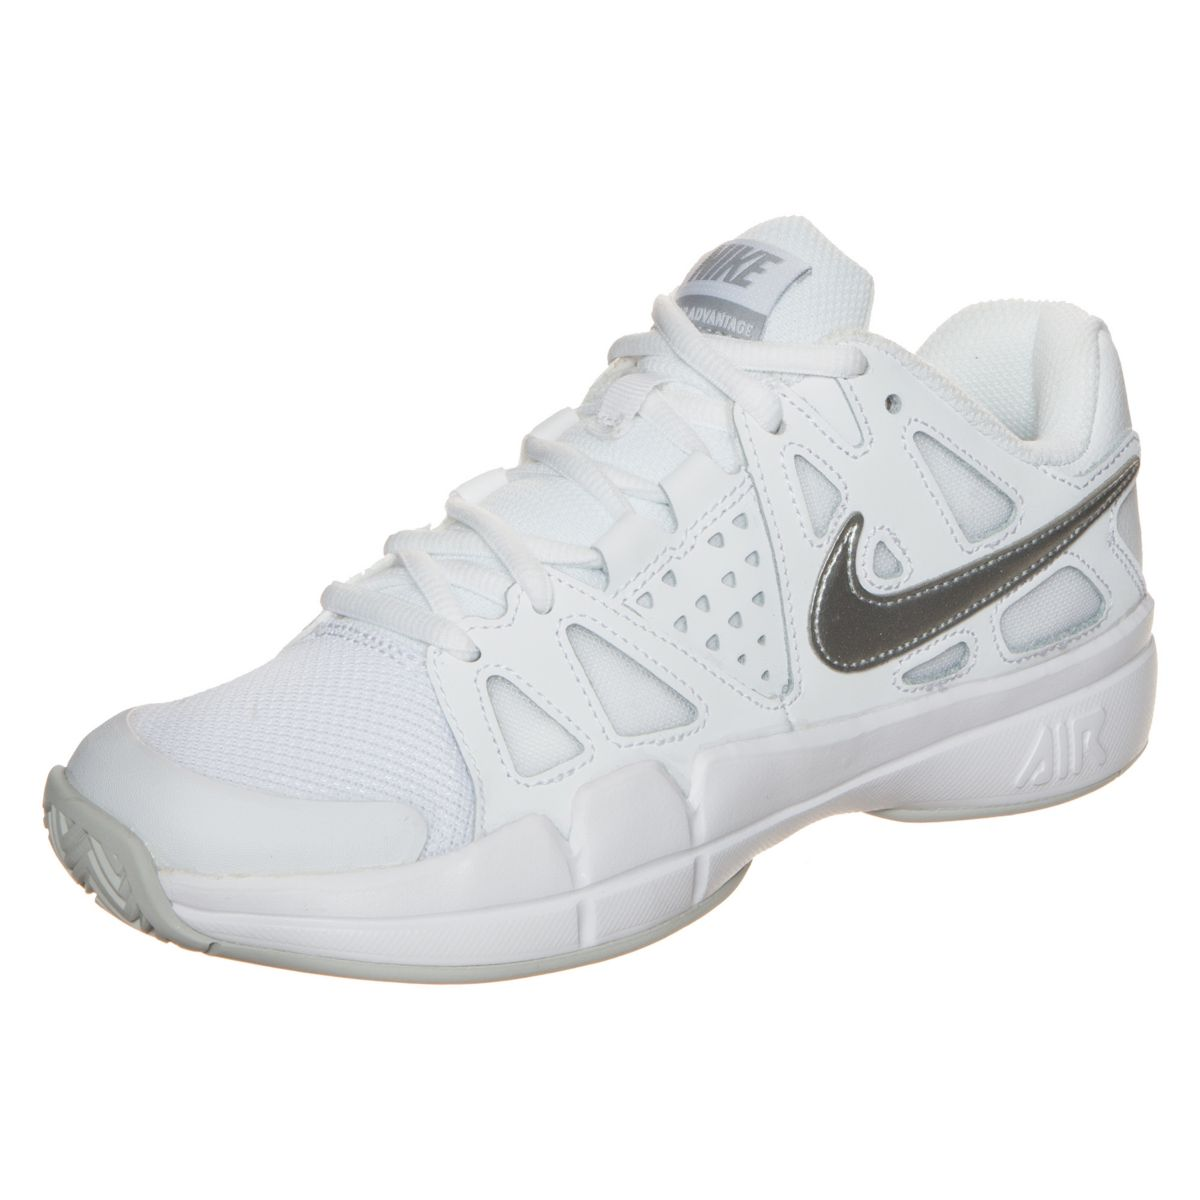 be01b3082eed01 NIKE Air Vapor Advantage Tennisschuh Damen